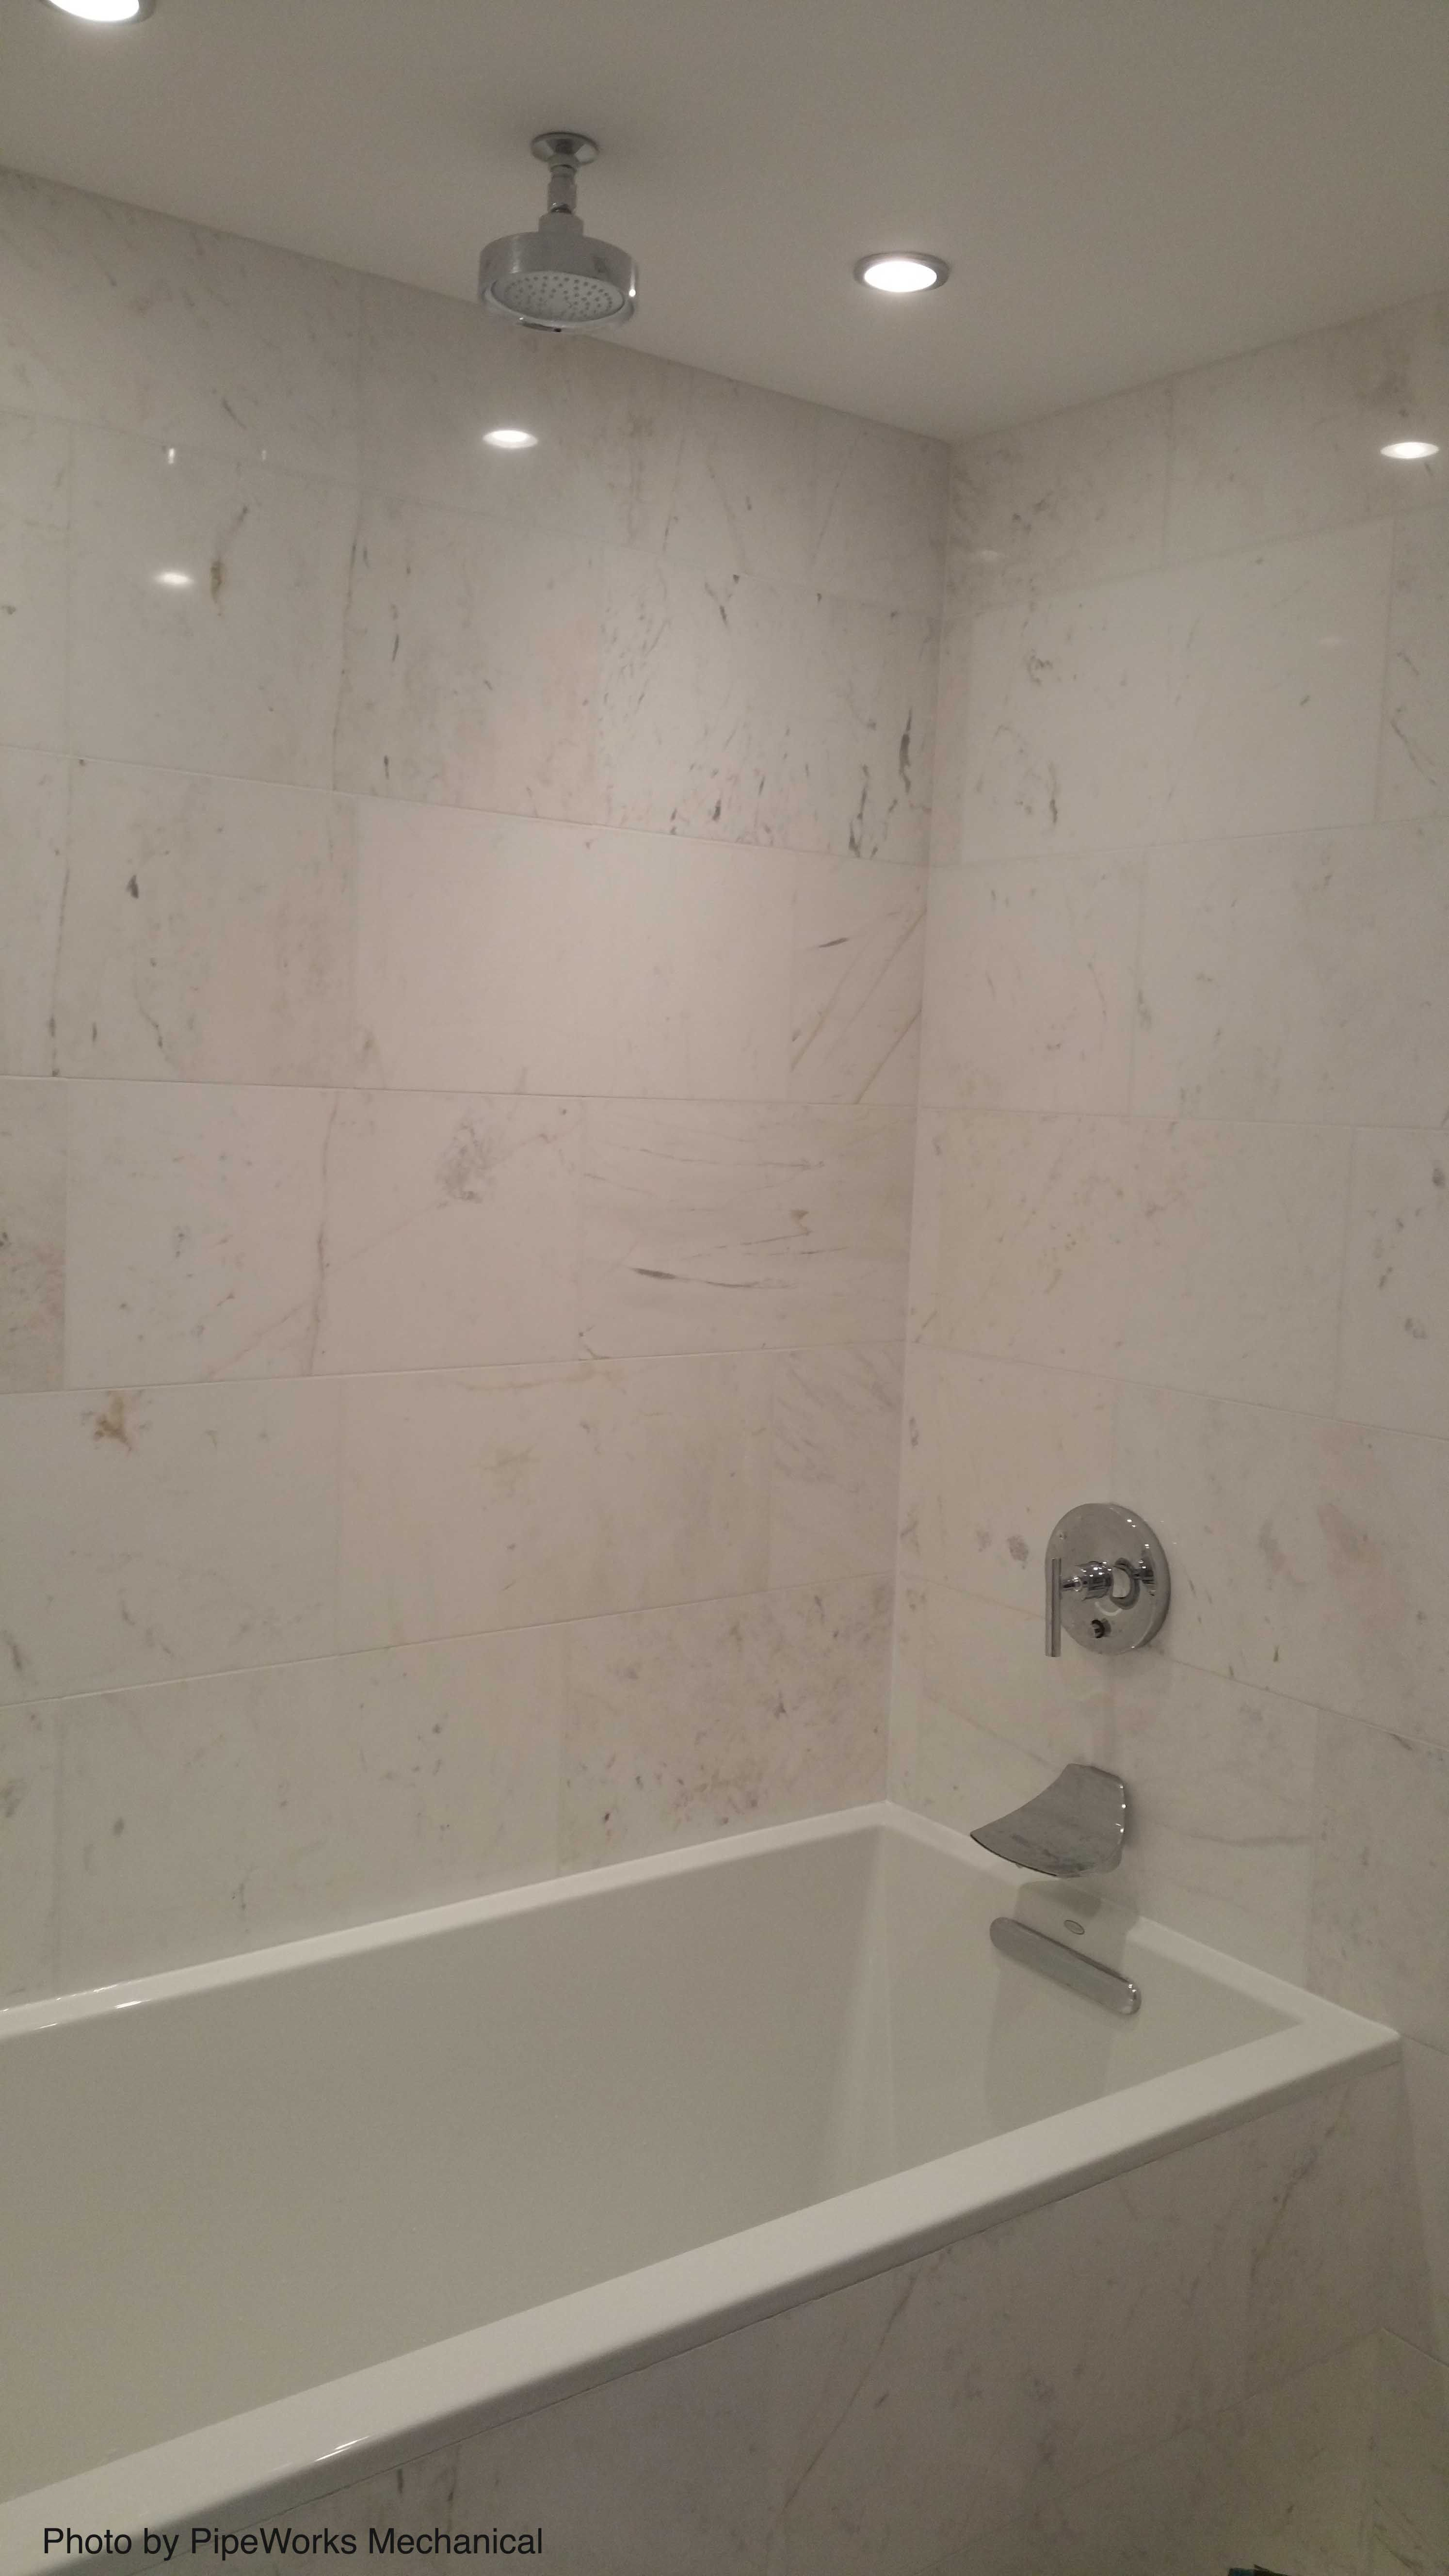 Shower Tub Combo With A Rainfall Deep Soaker And Beautiful White Tile All Around Head Seems Bit Small Don T You Think